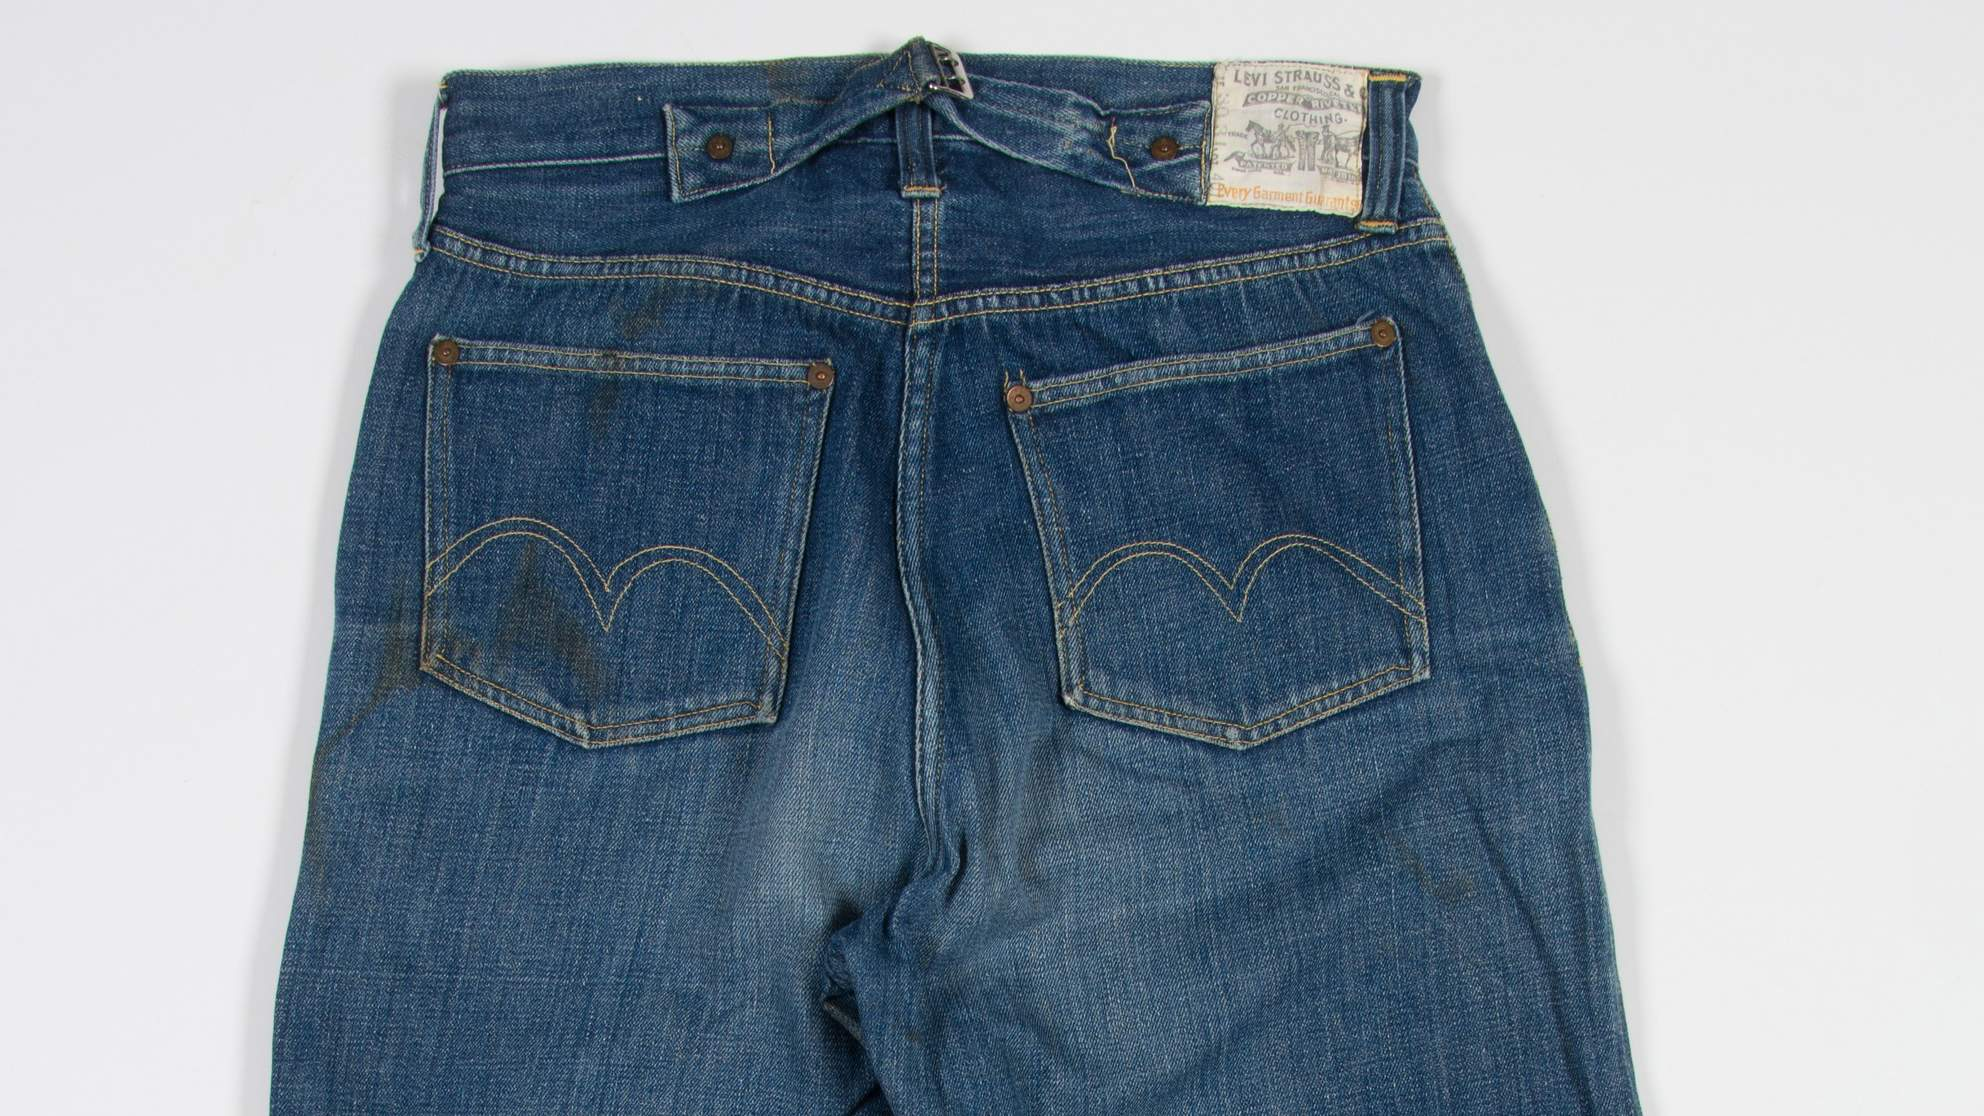 The Oldest Pair of Women's Jeans Were Just Discovered, and Yes, They Are Mom Jeans